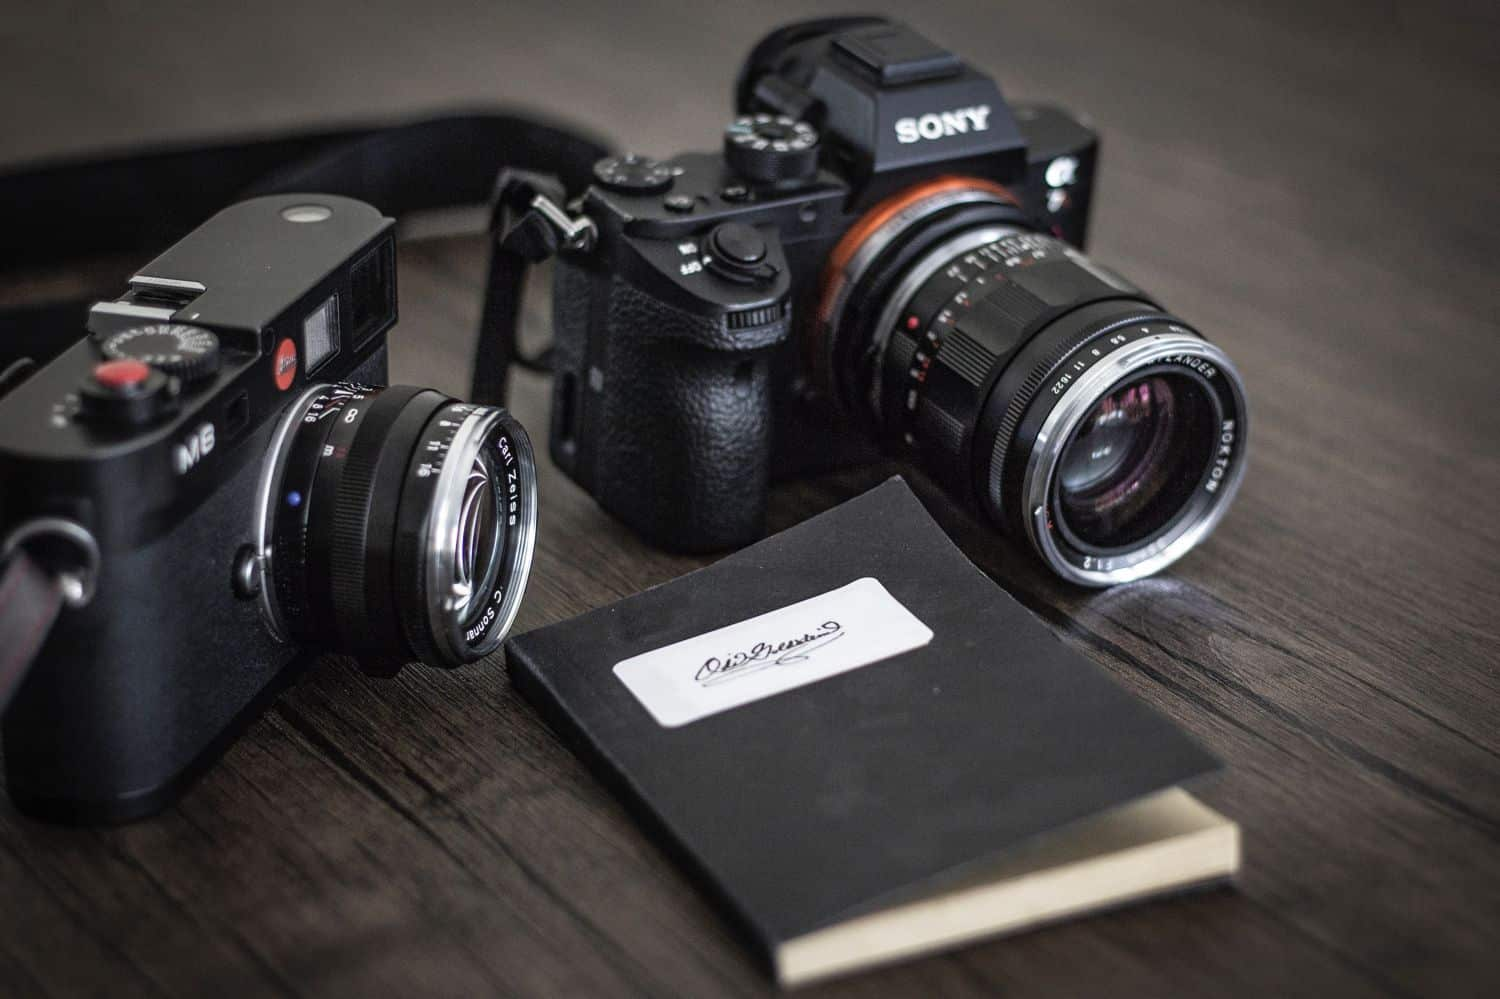 Two cameras and a black notebook placed on wooden surface